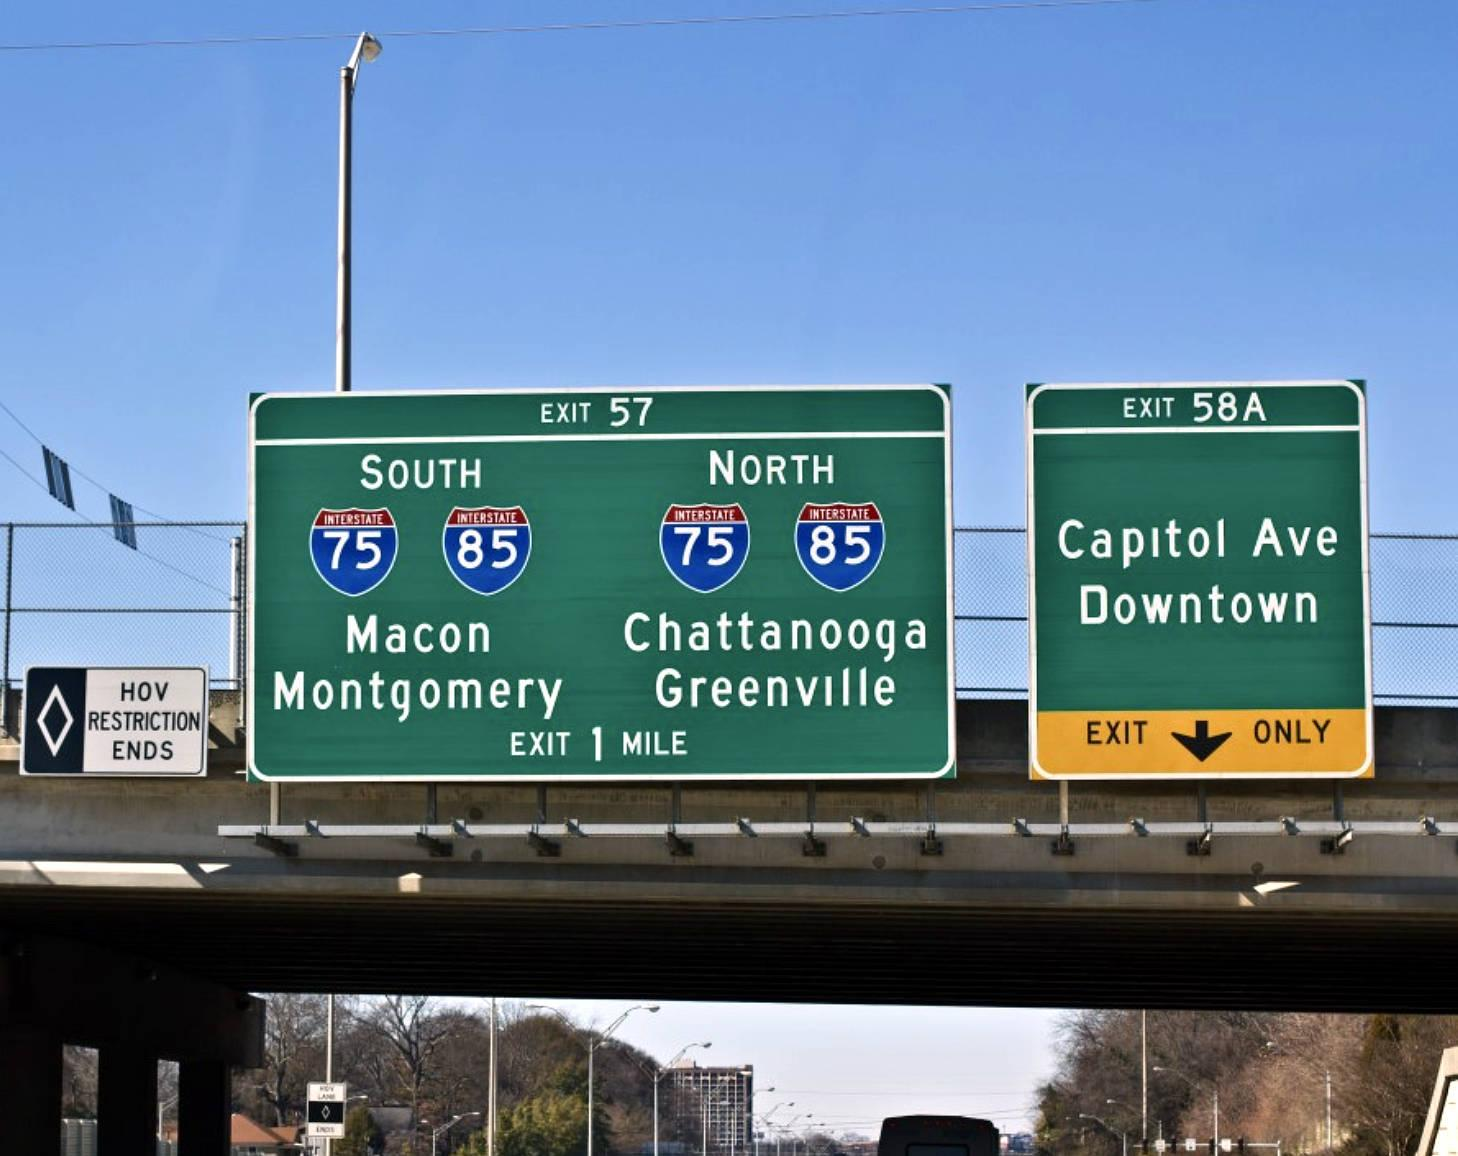 Most states--except New York--the mile markers line up with the exit numbers.